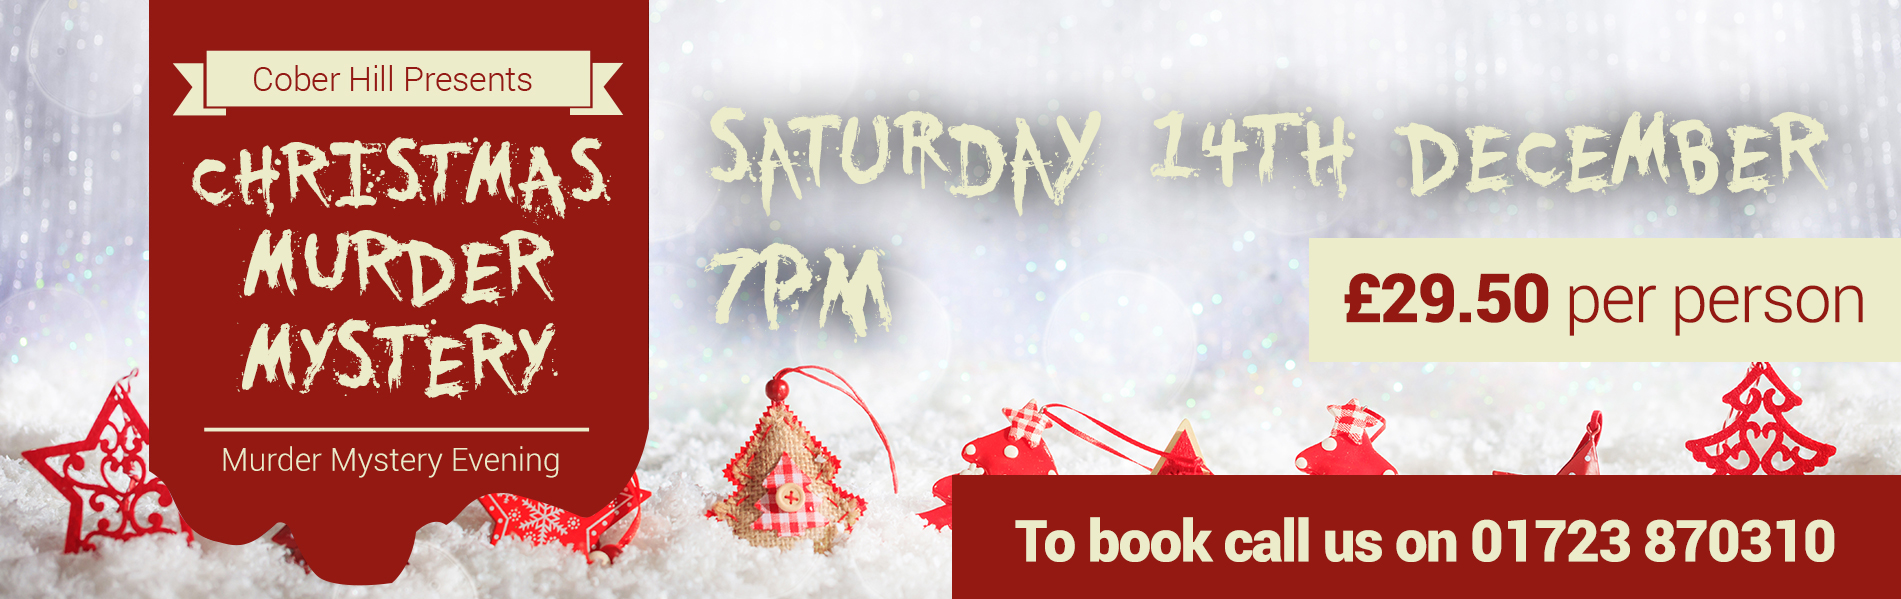 Christmas Murder Mystery Evening - Saturday 14th December 2019 - Only £29.50 per person